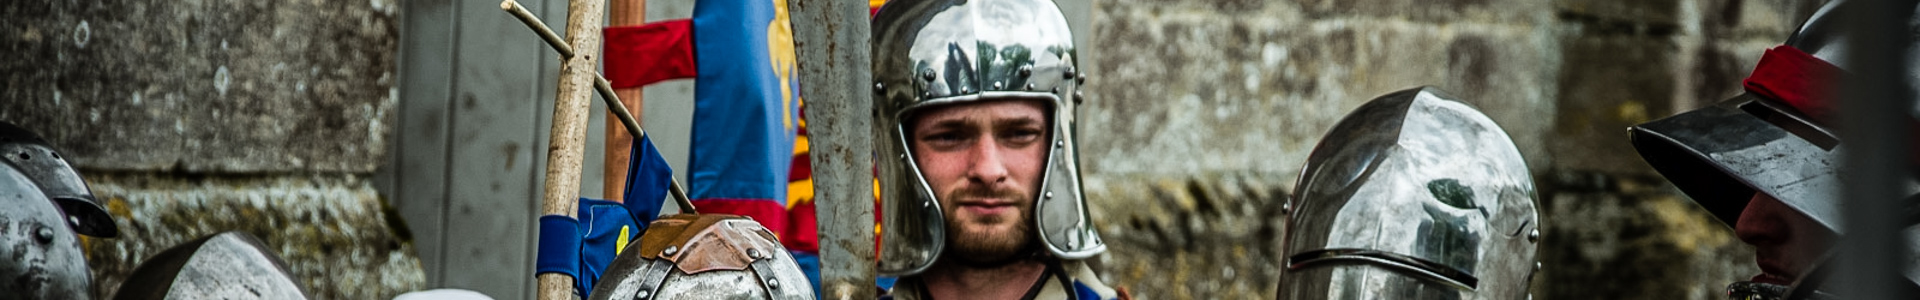 The Medieval Siege Society is a group with a diverse me...